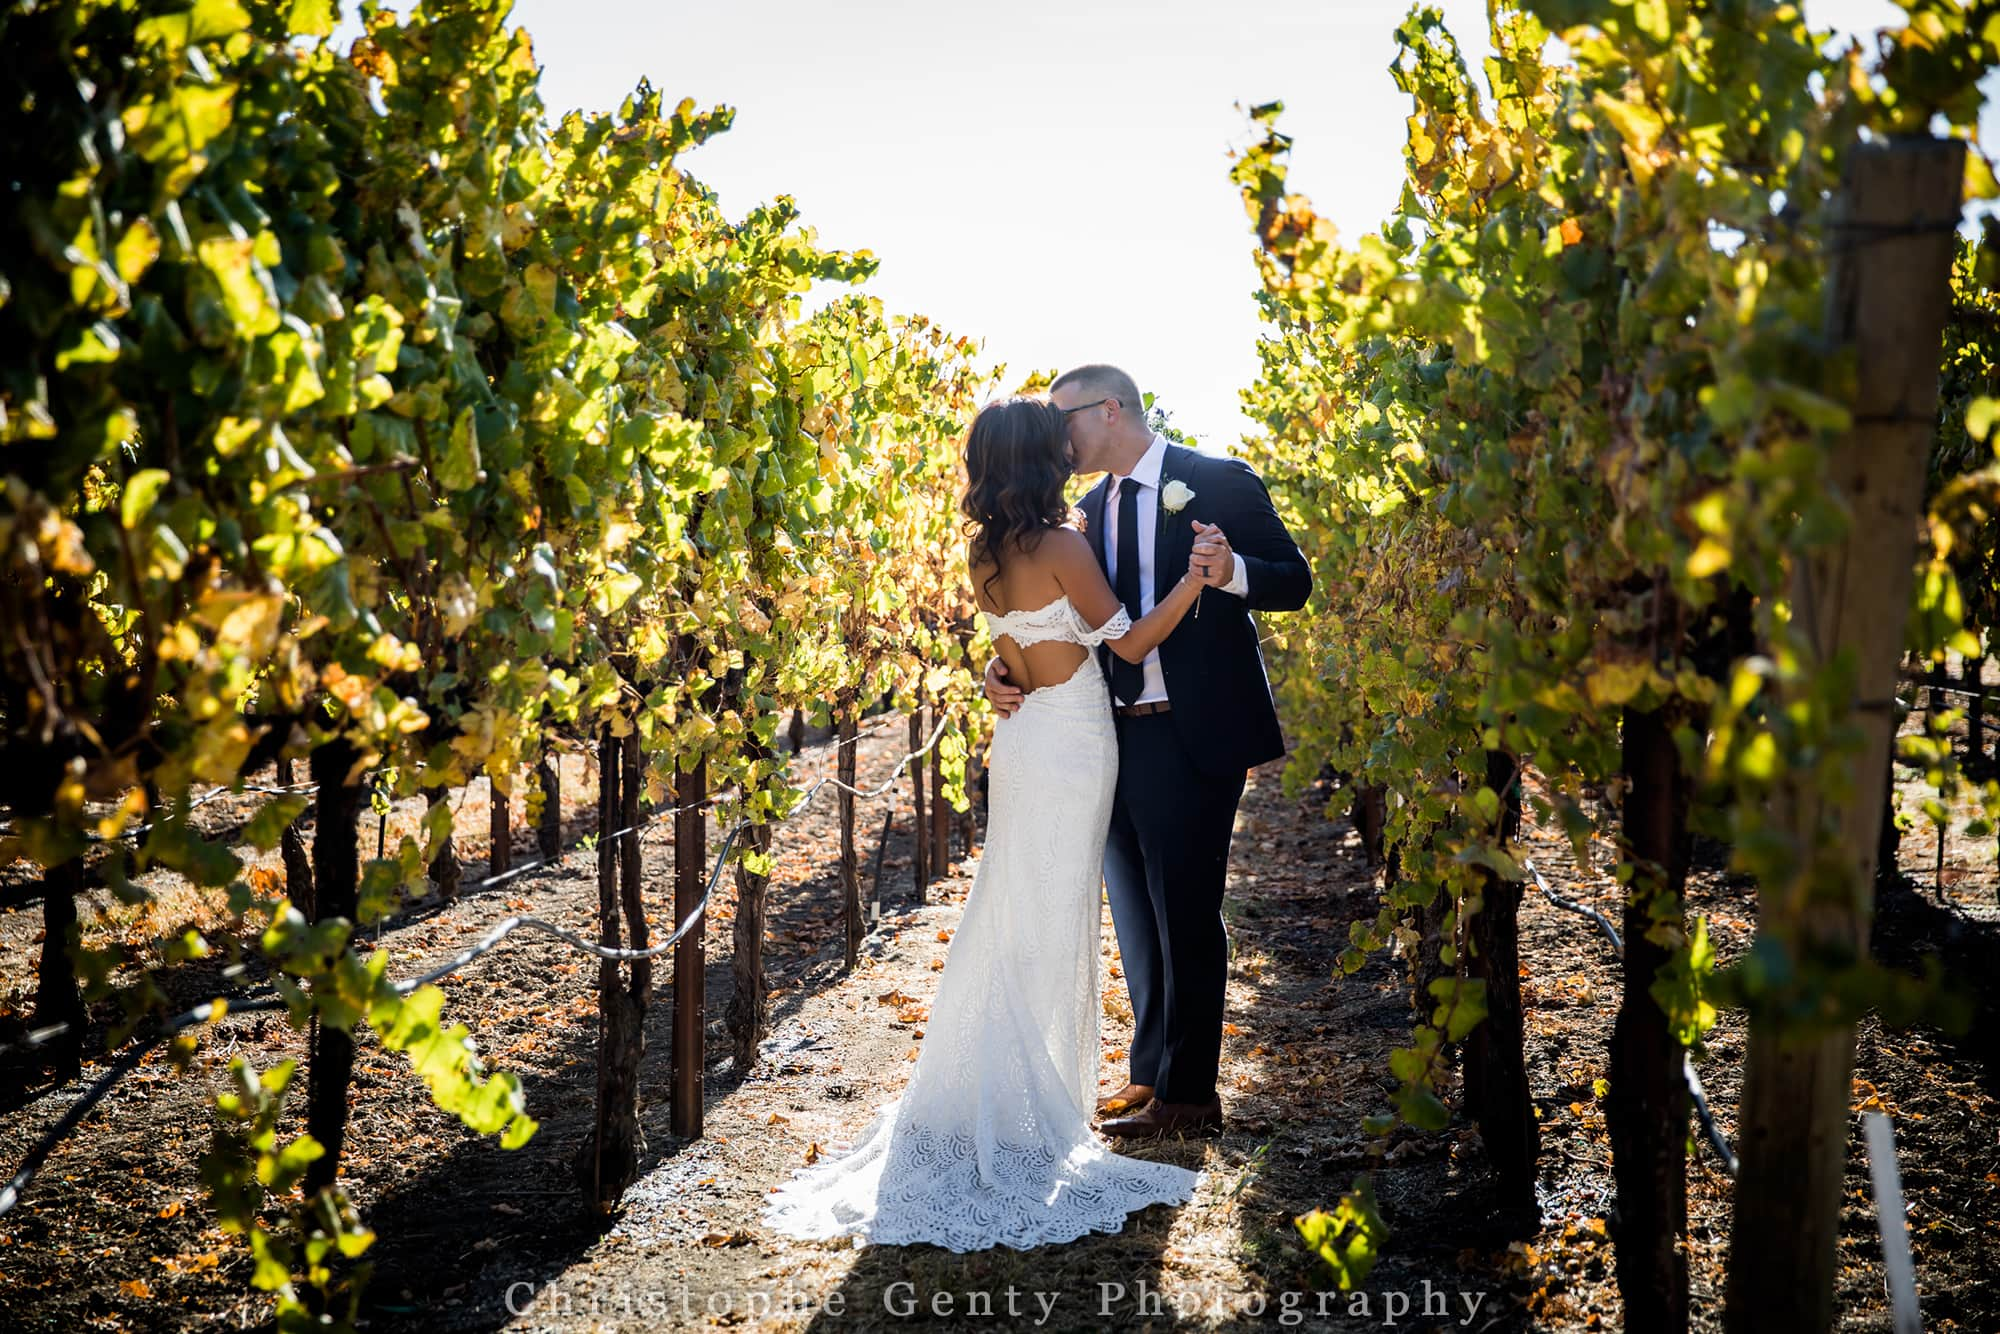 Elopement photography at Robert Young Winery in Geyserville in CA